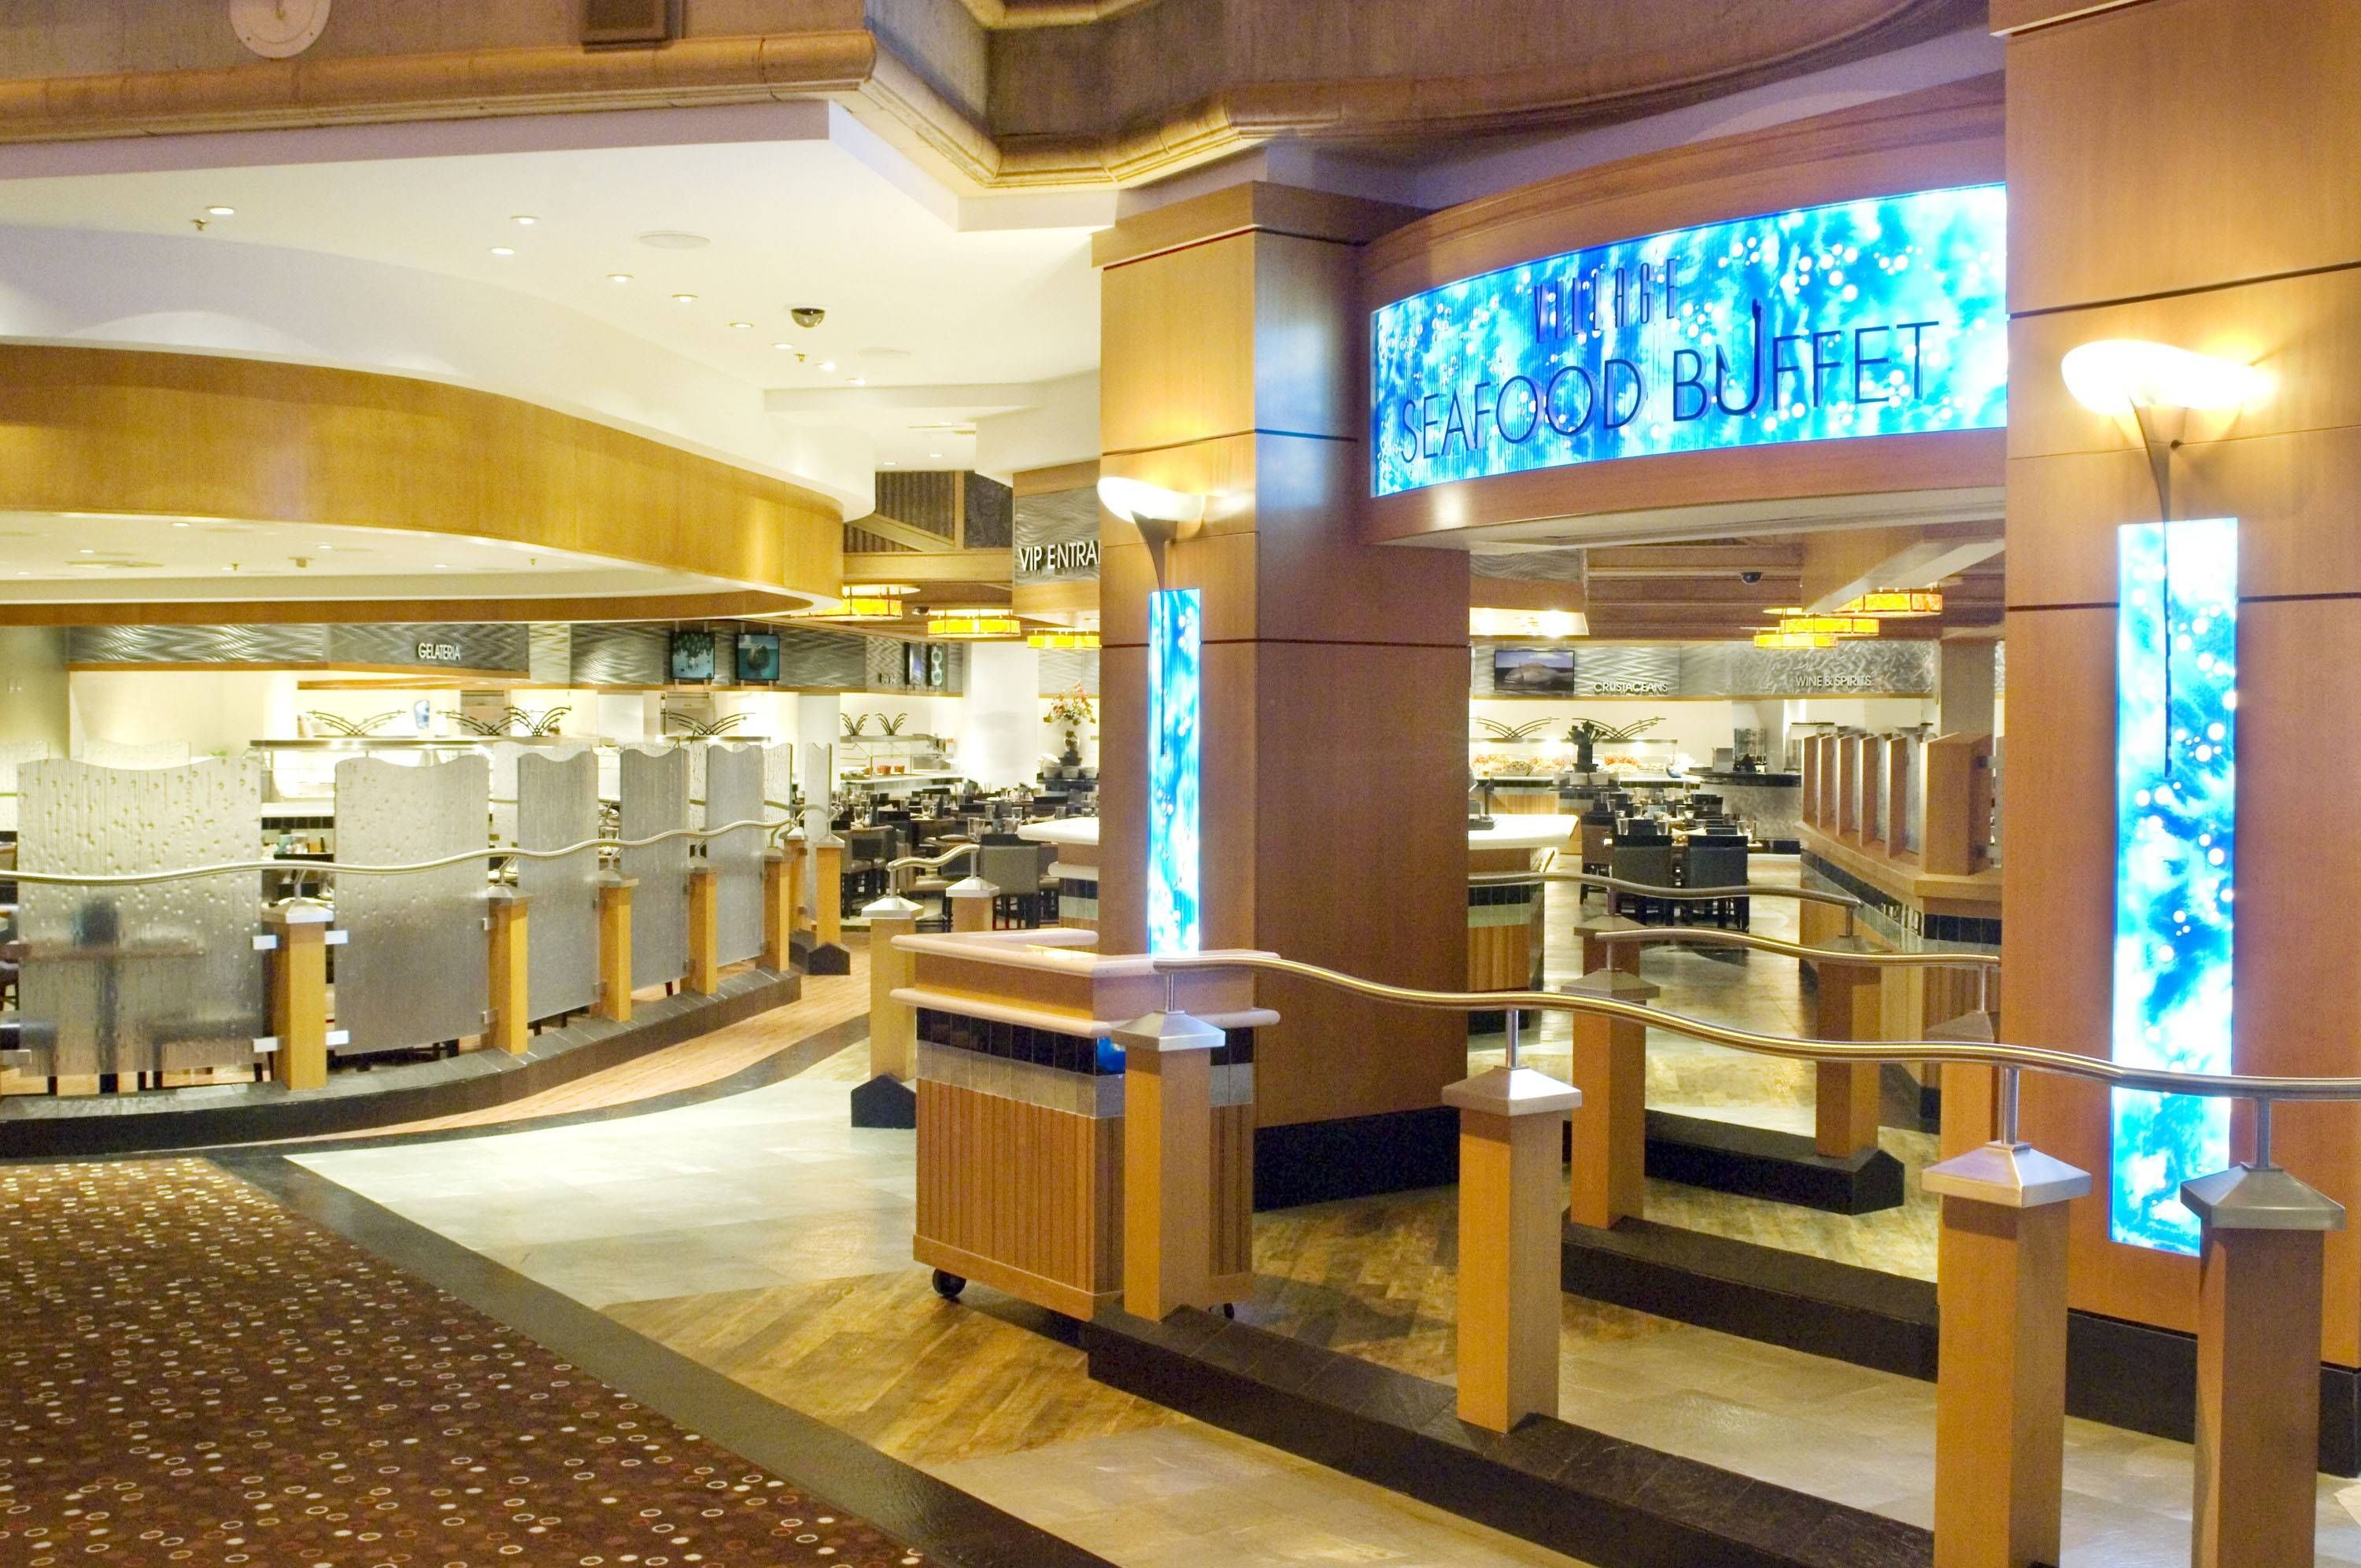 Village Seafood Buffet at the Rio,Las Vegas | Las vegas ...